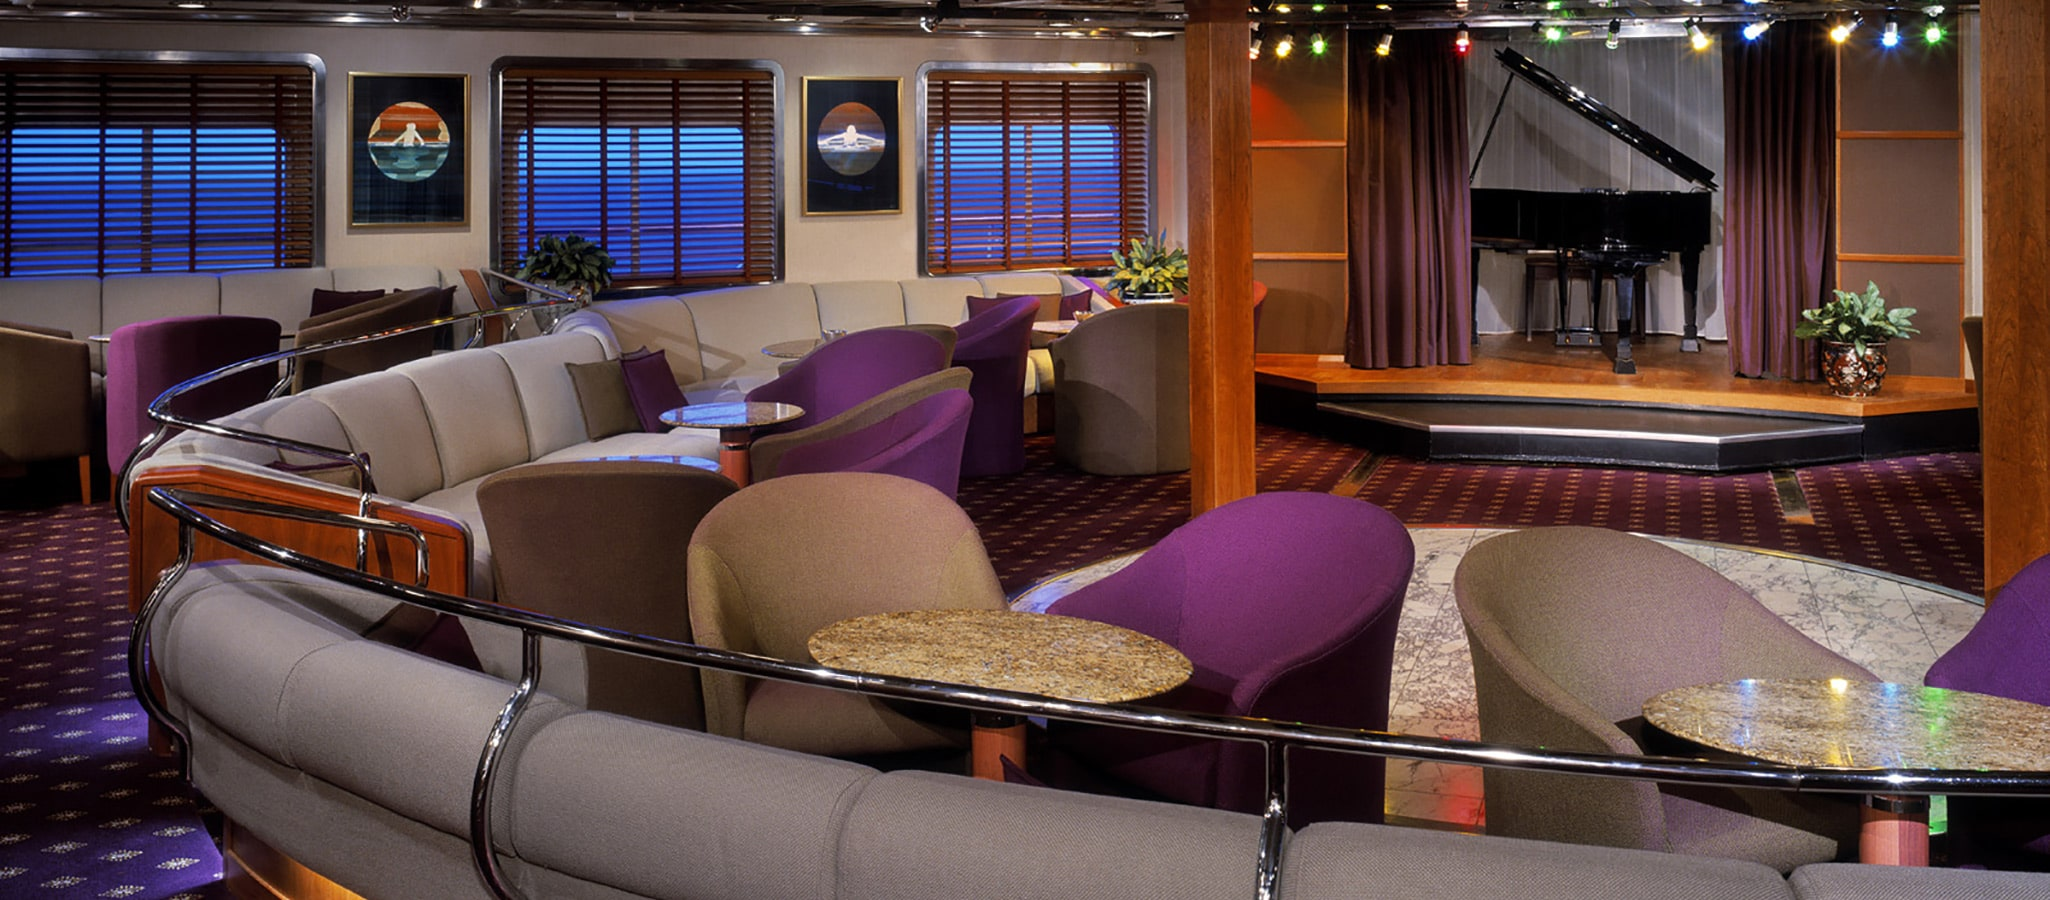 Conferences can be implemented in a highly professional manner even on board small cruise ships.